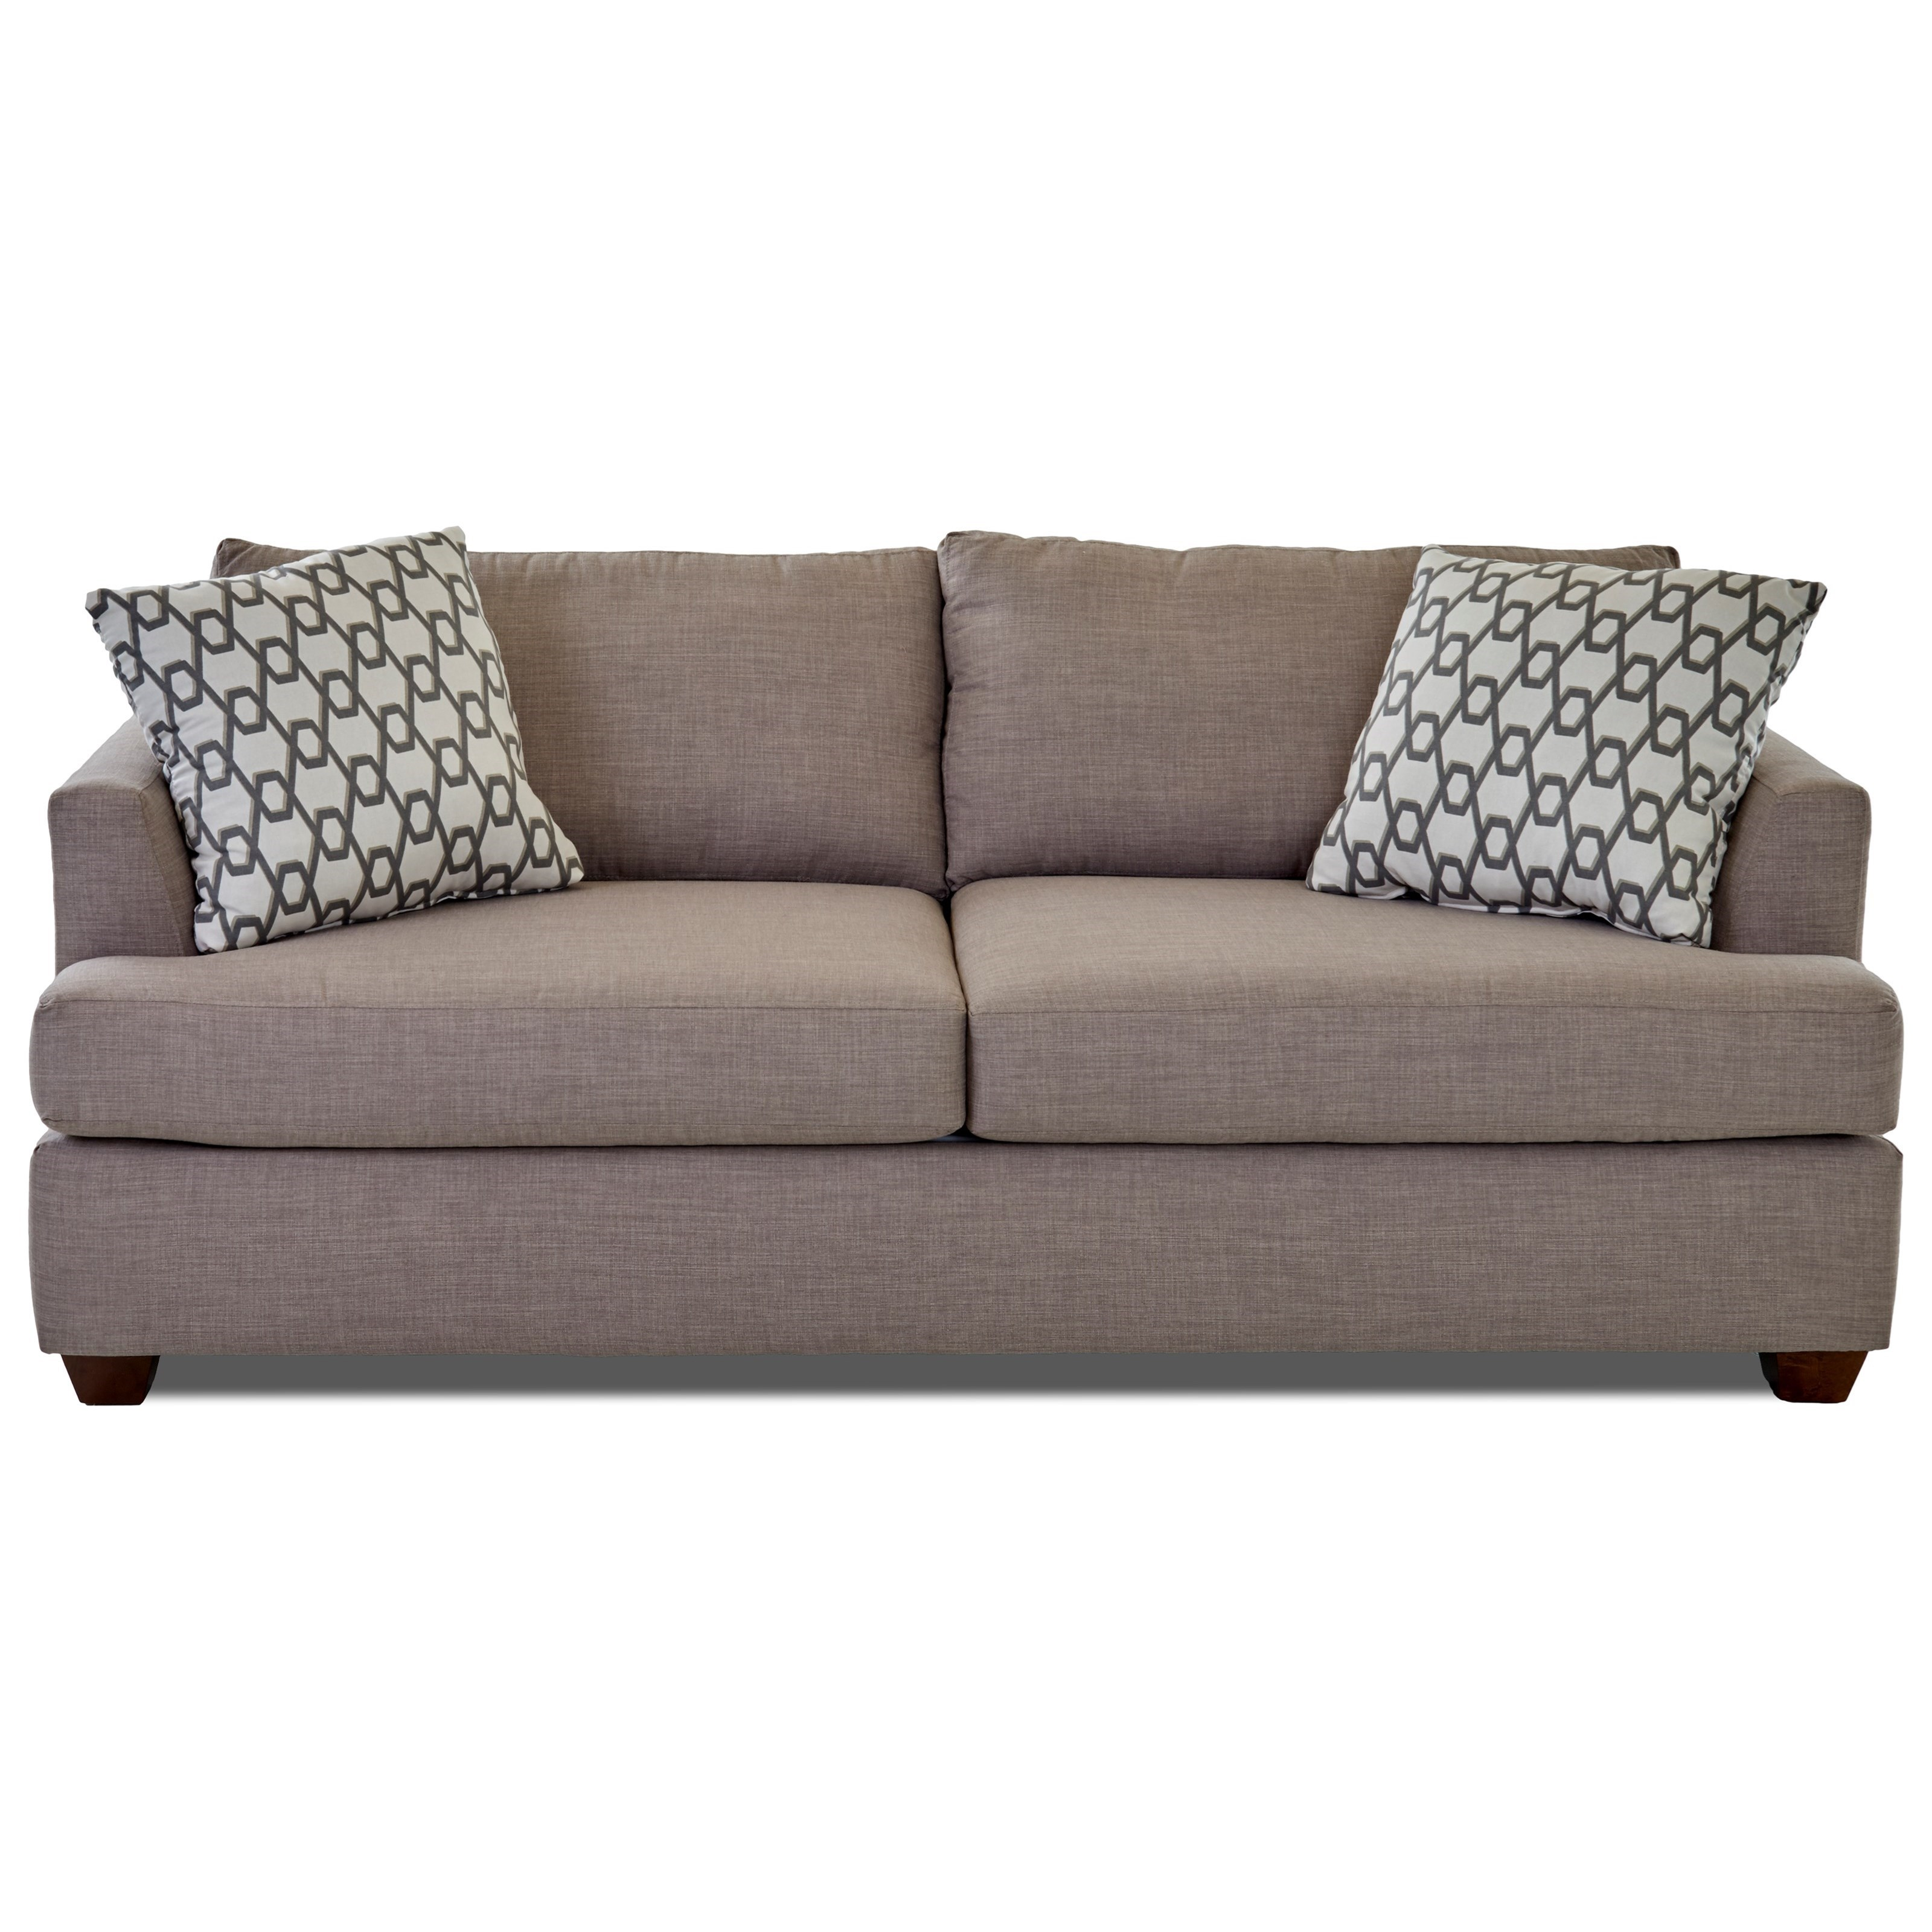 sleeper sofa no arms grey sectional queen inner spring with track by